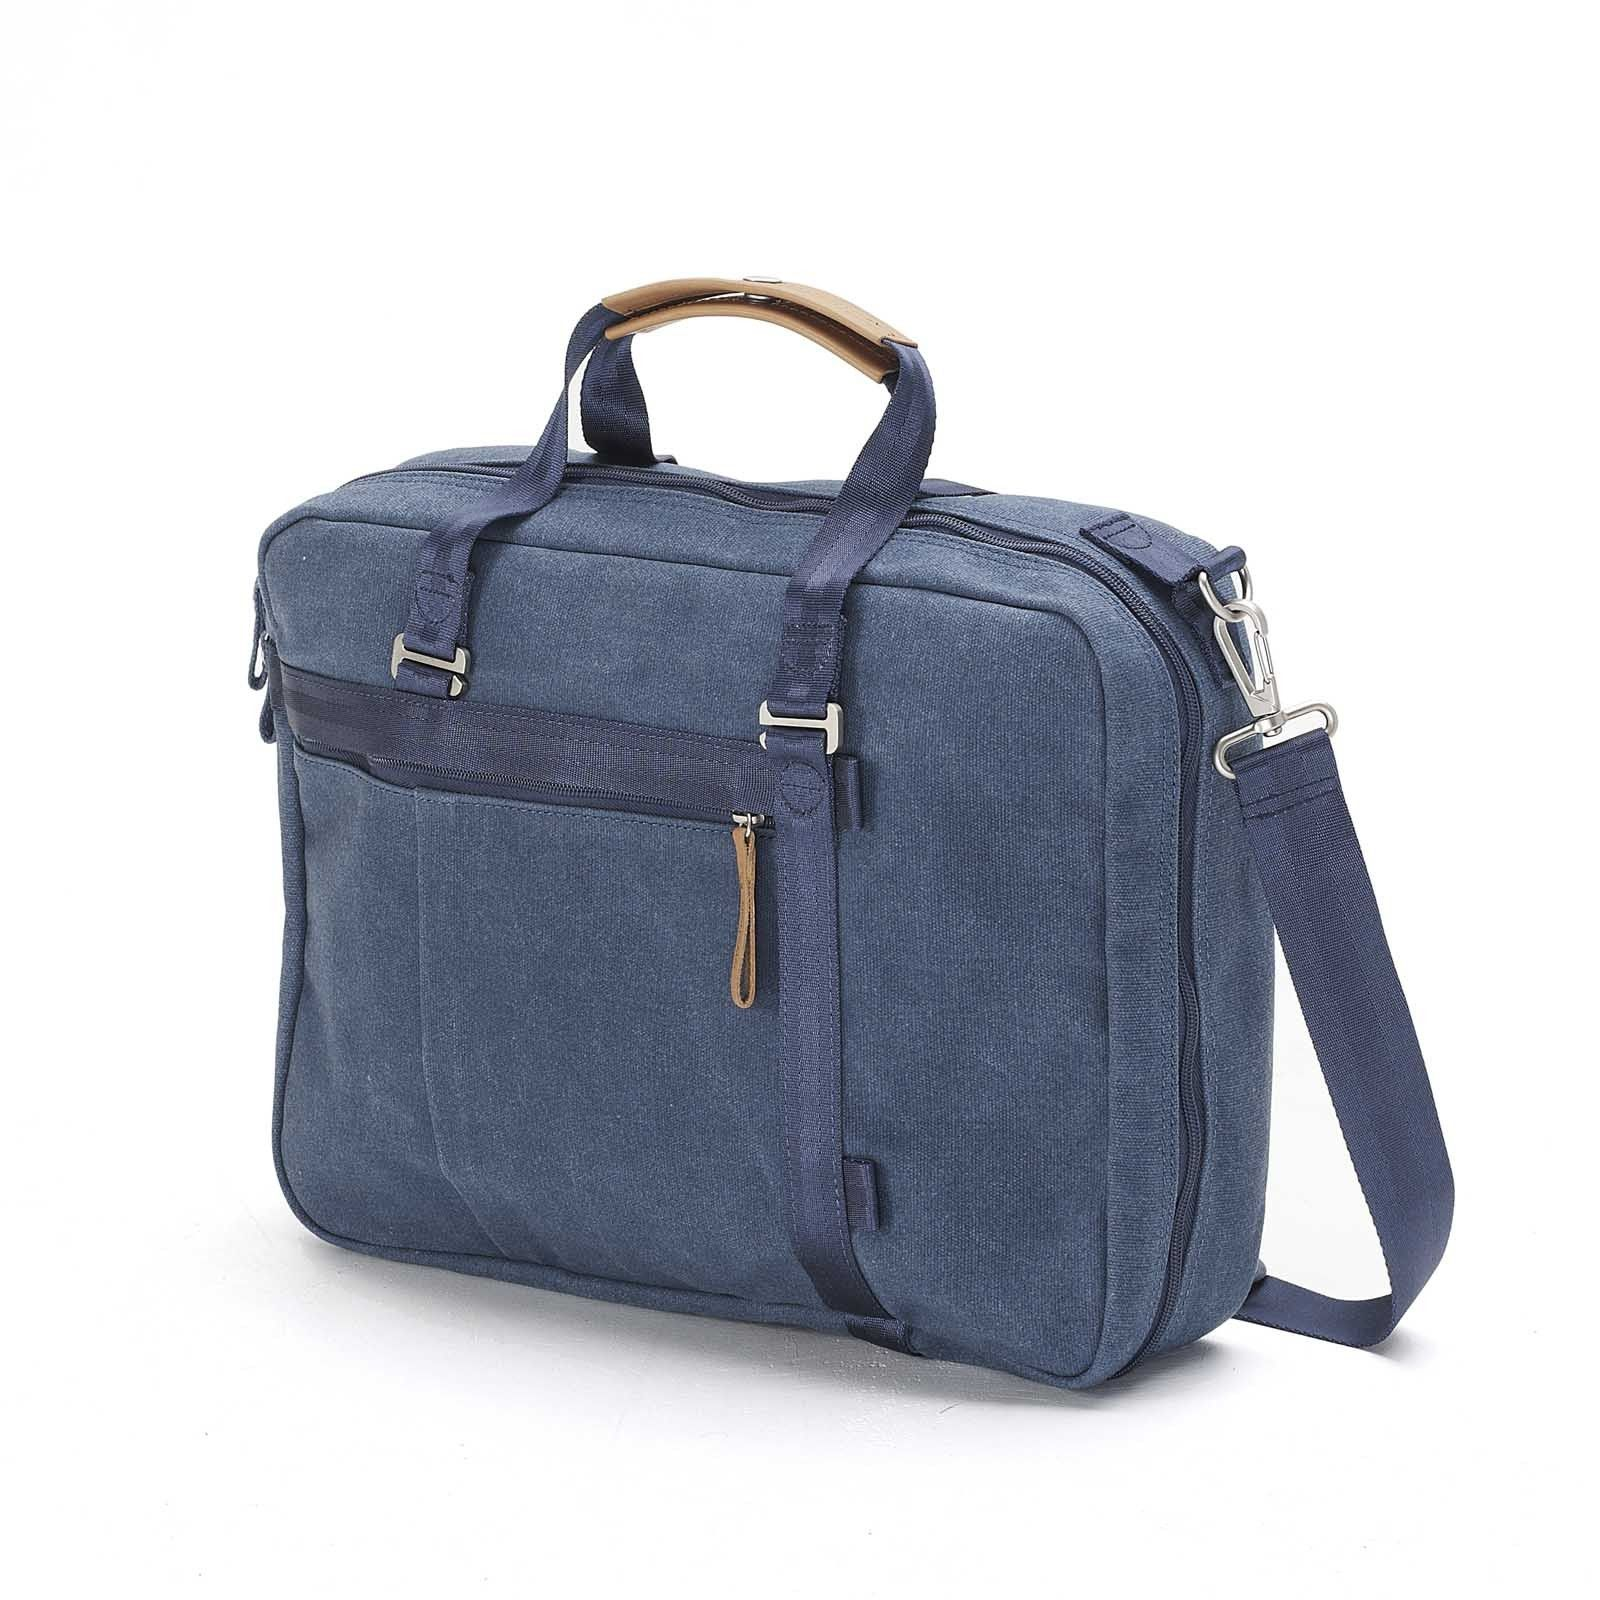 "QWSTION Office Tote in Pacific Navy - Whether you like it up or down or smart or serious, the officetote works in every situation.  The removable handles can be attached vertically or horizontally and the bag includes a 15"" laptop compartment with a neoprene protection sleeve.  This bag adapts to every situation, whether you are uptown or downtown."